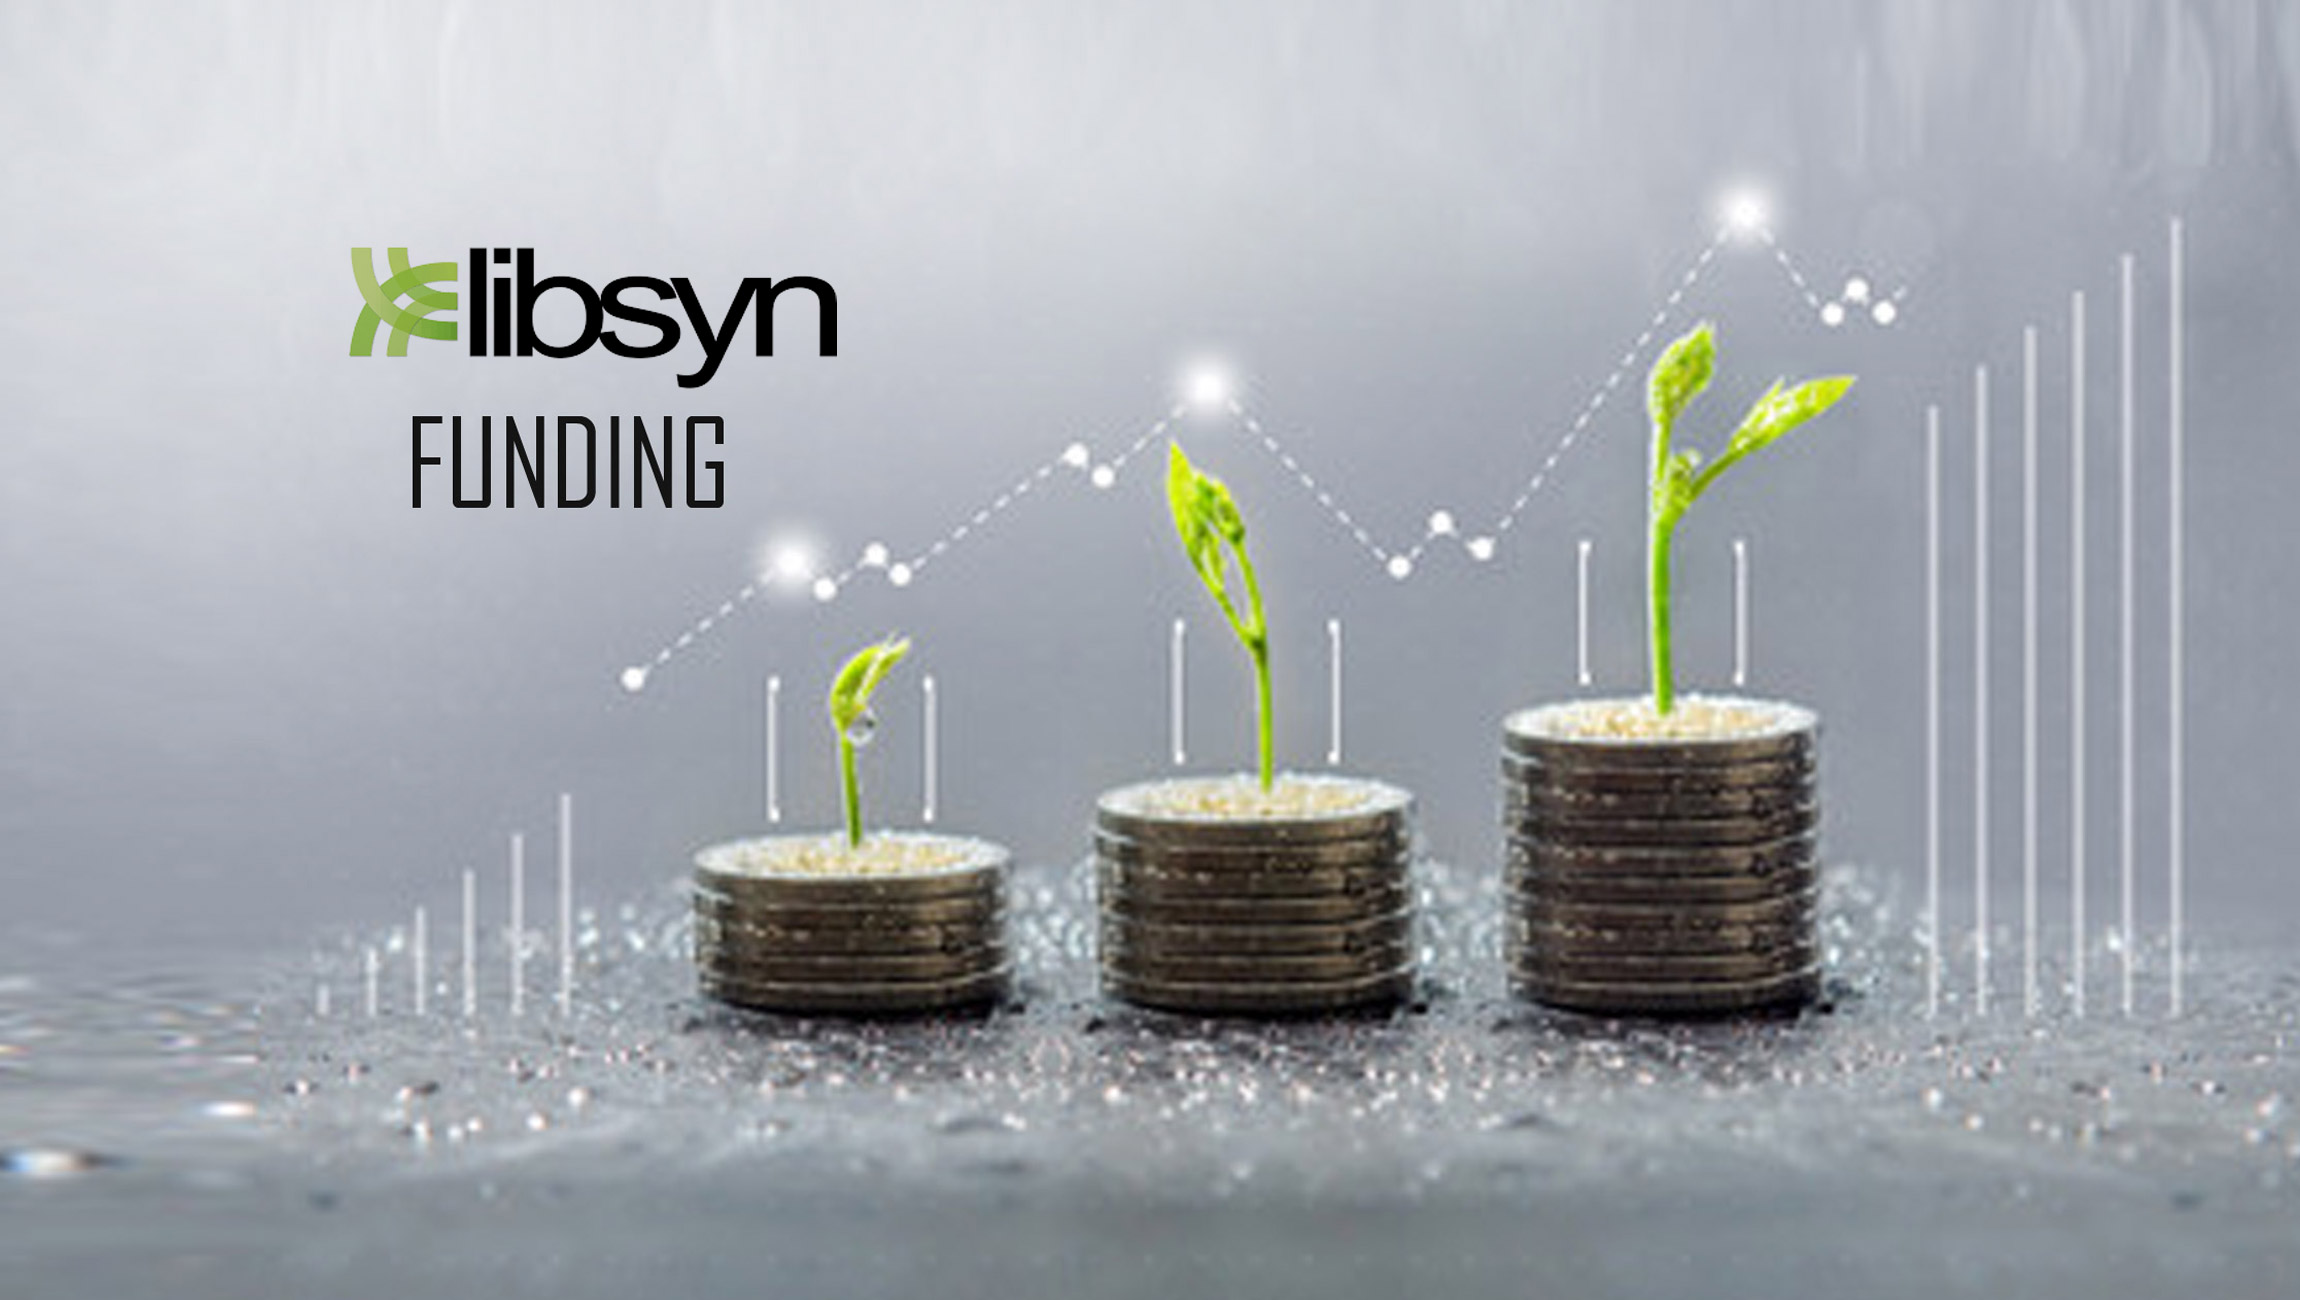 Libsyn Announces Closing of AdvertiseCast Acquisition and $25 Million Equity Financing